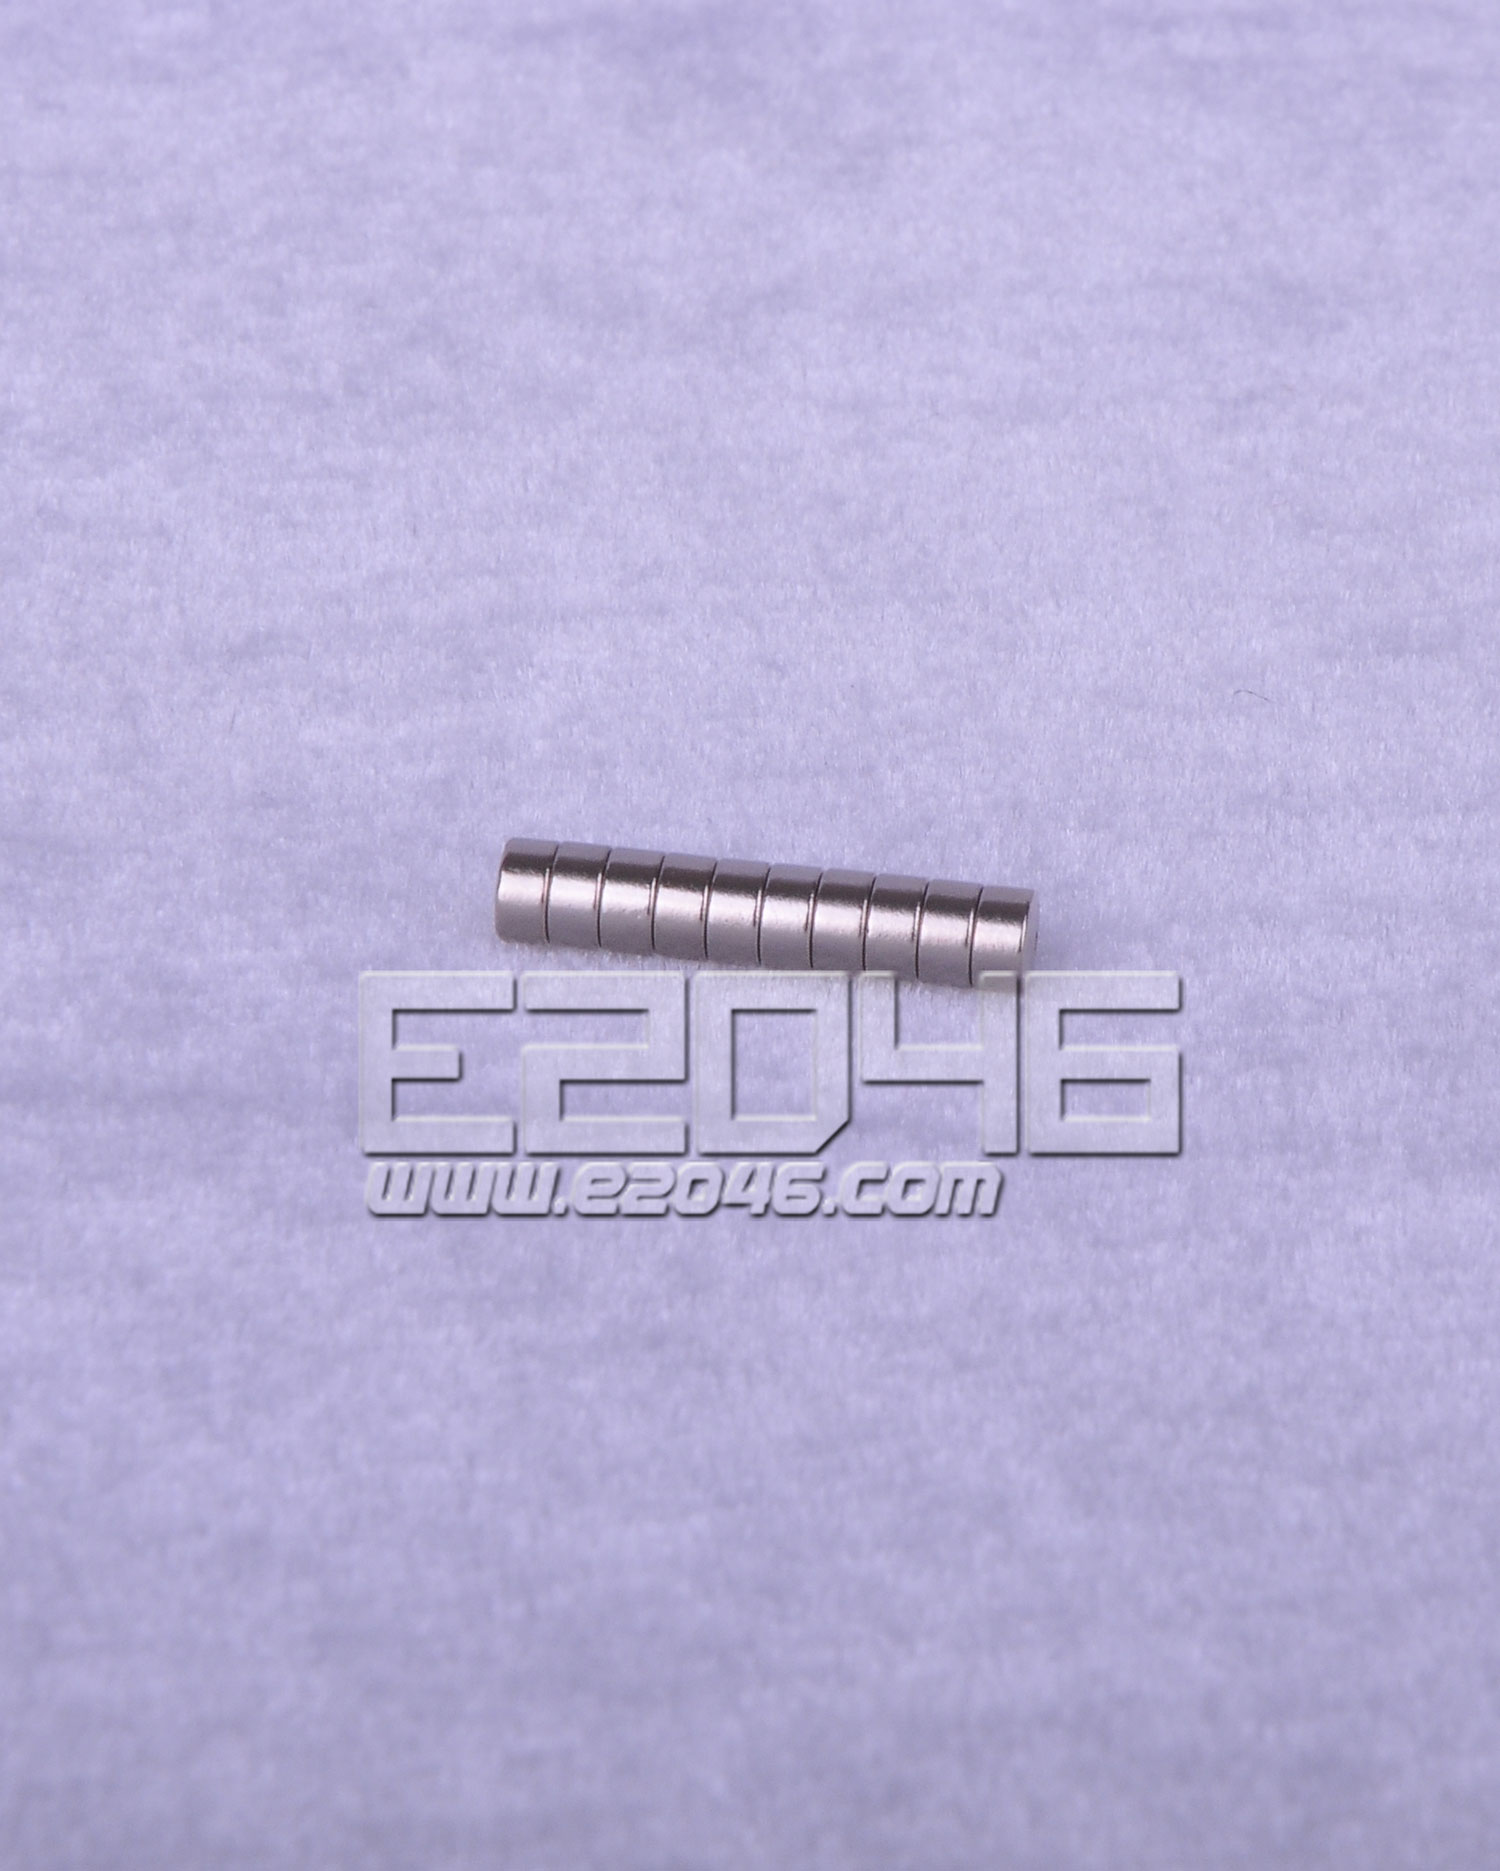 Strong Neodymium Magnet 4mm x 2mm Pack of 10